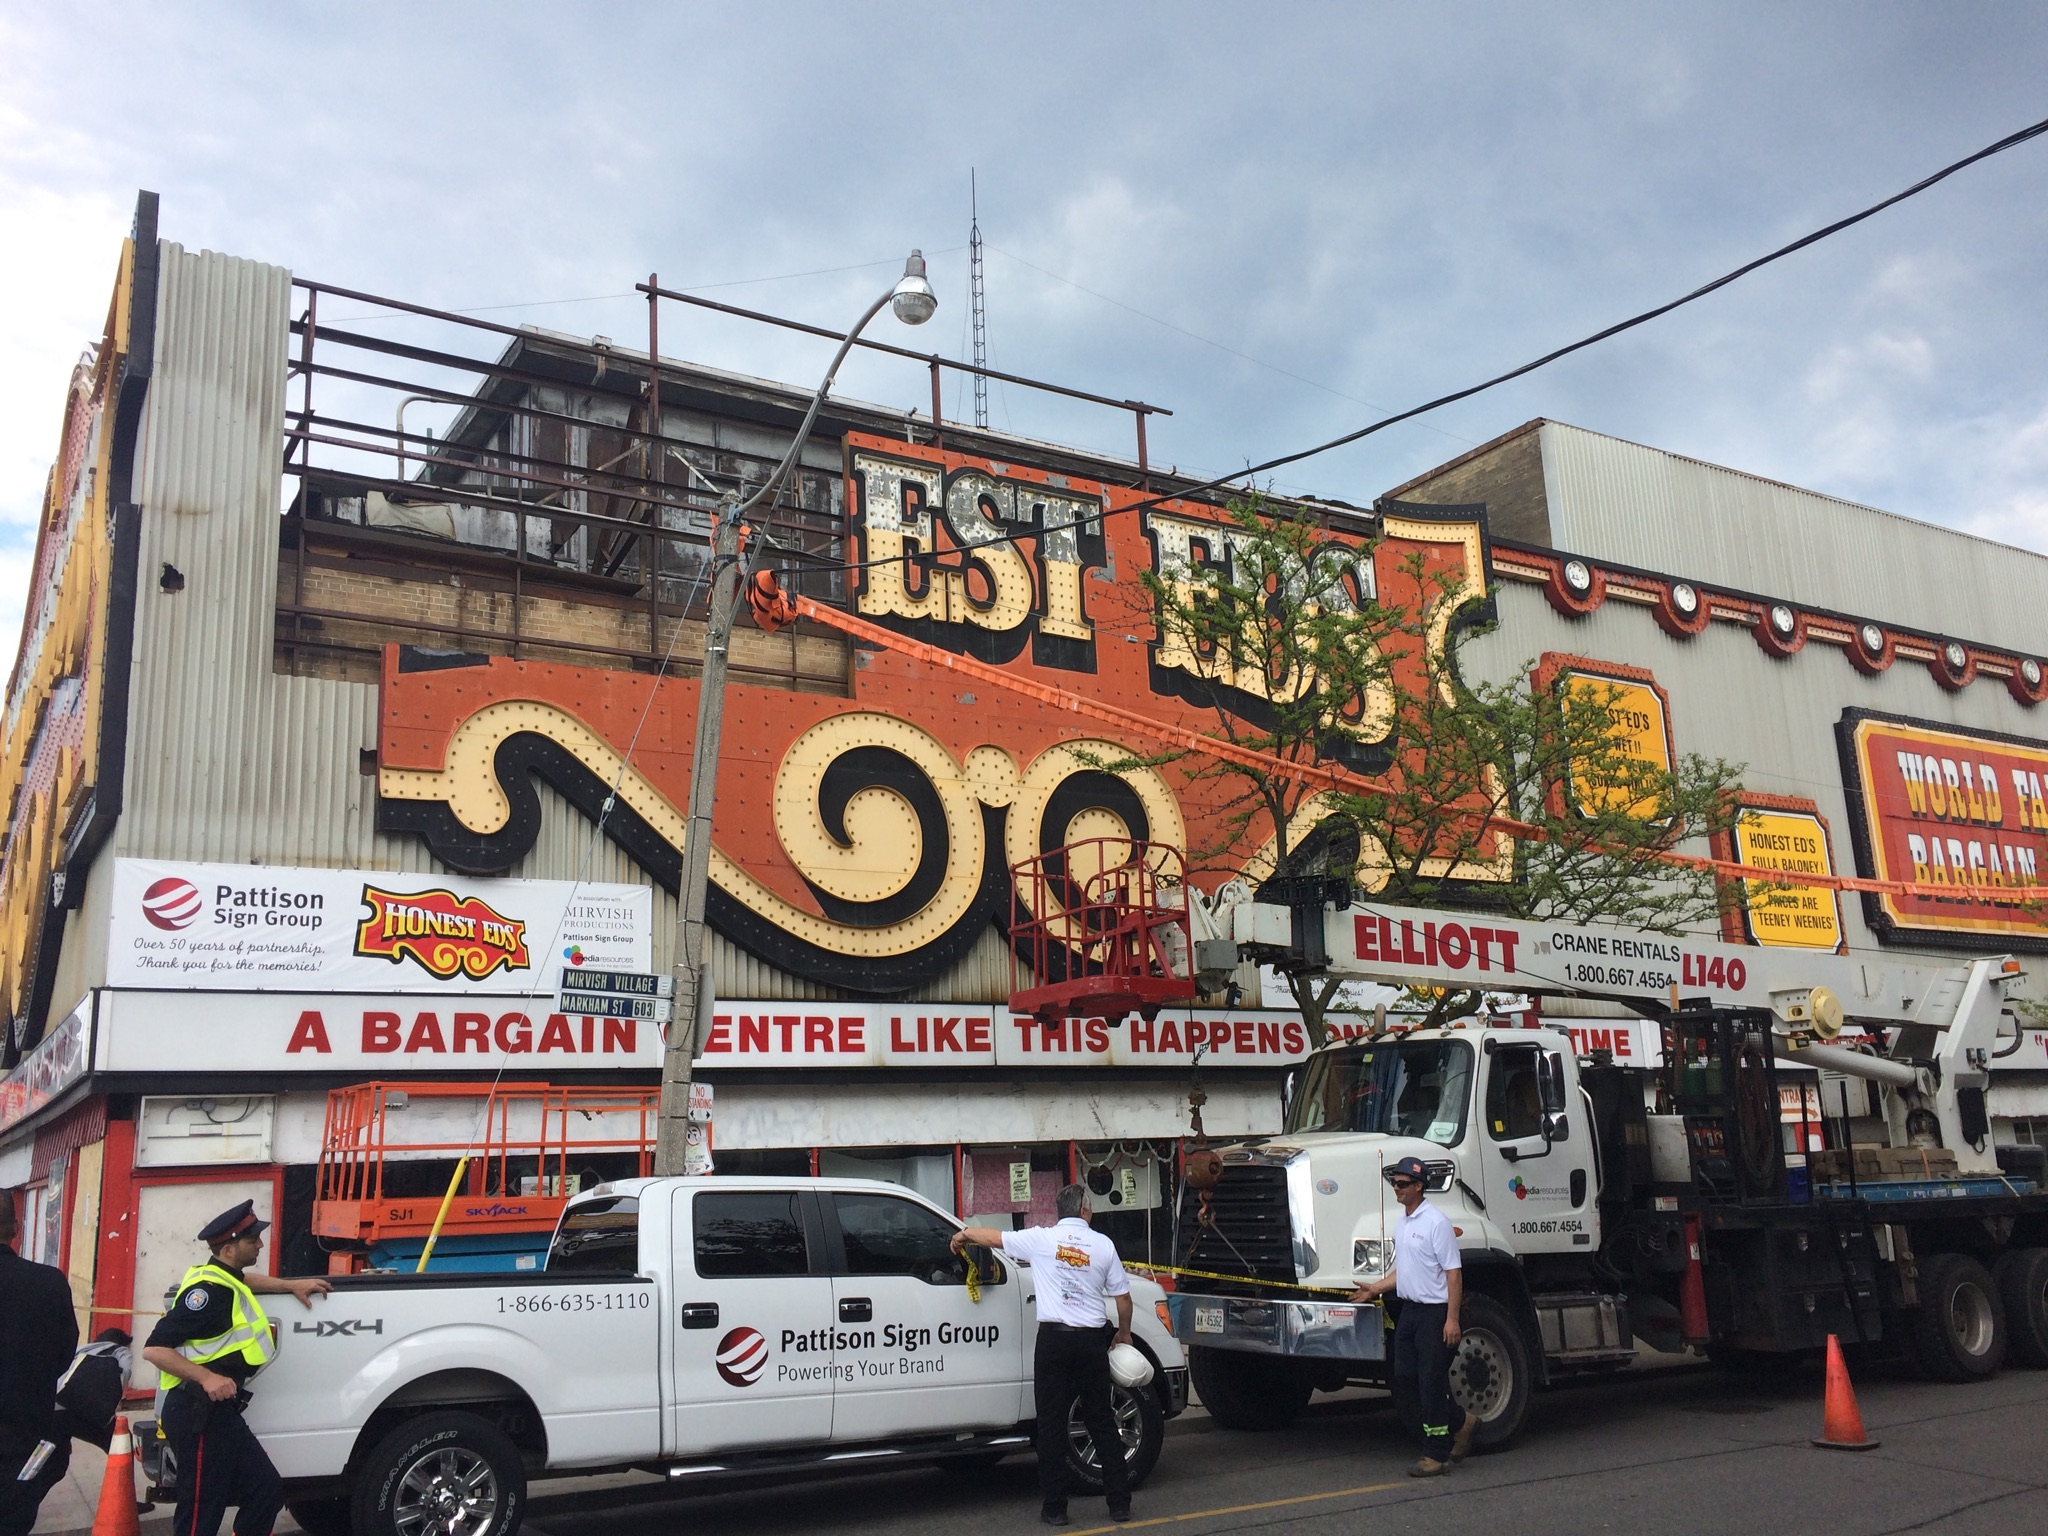 *And so it goes… the removal of the Honest Ed's sign ...